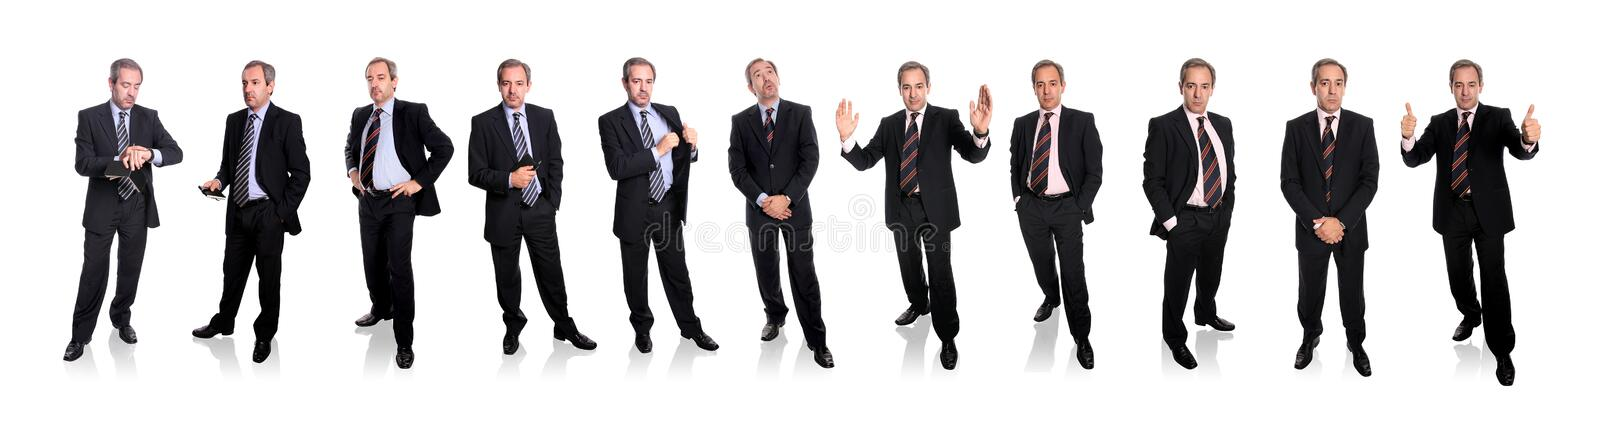 Group of businessmen - full body. Group of successful businessmen, isolated on white - Individual images also available in higher resolution stock photos